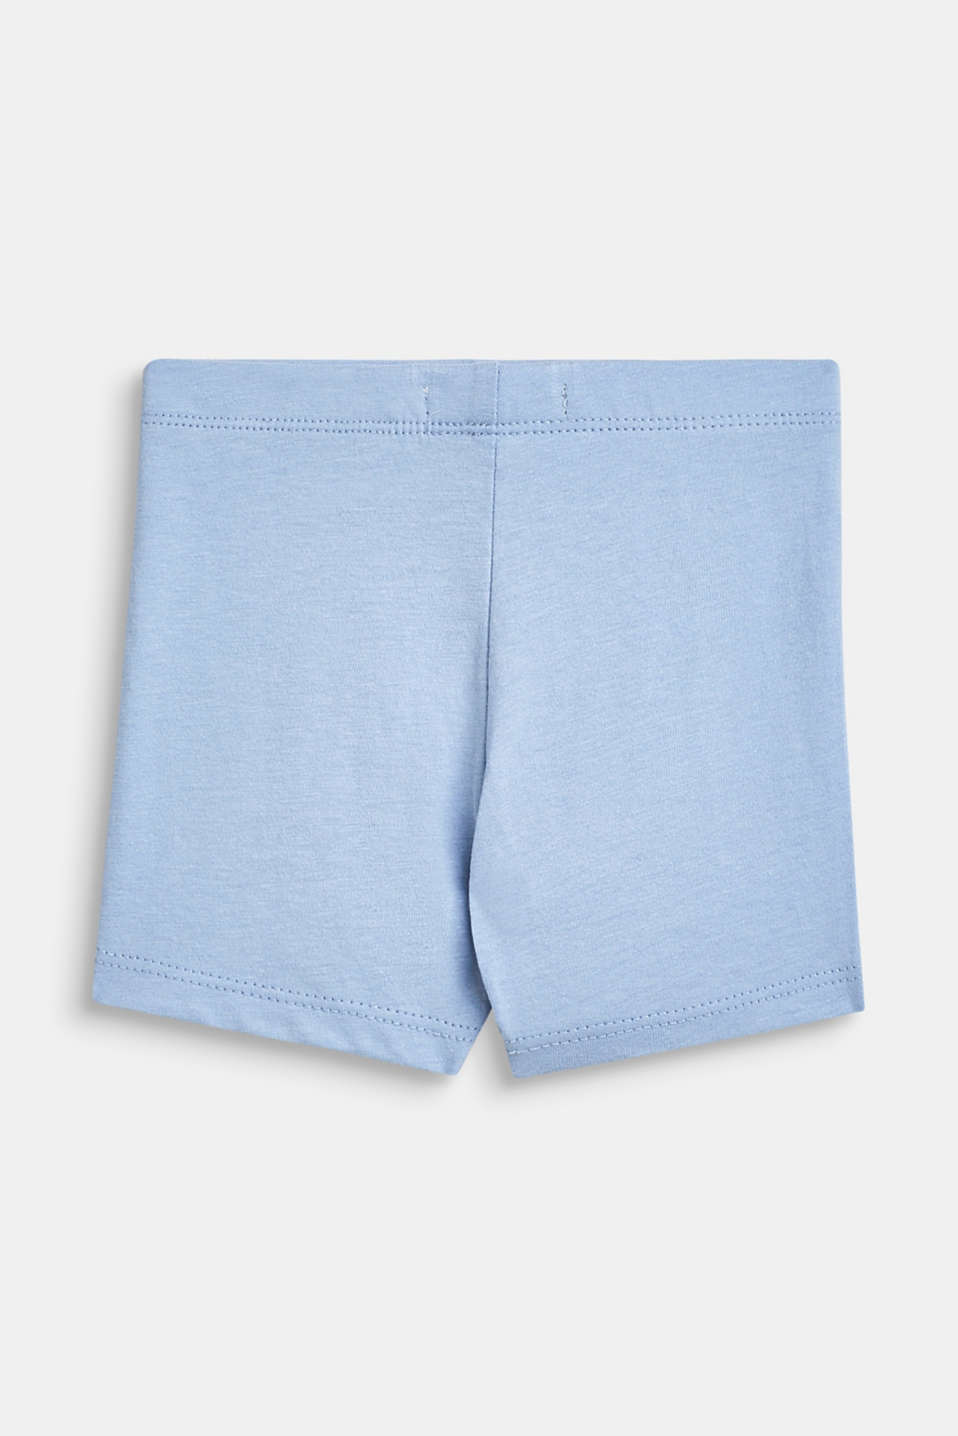 Jersey shorts with an animal motif, 100% cotton, LCSKY BLUE, detail image number 1